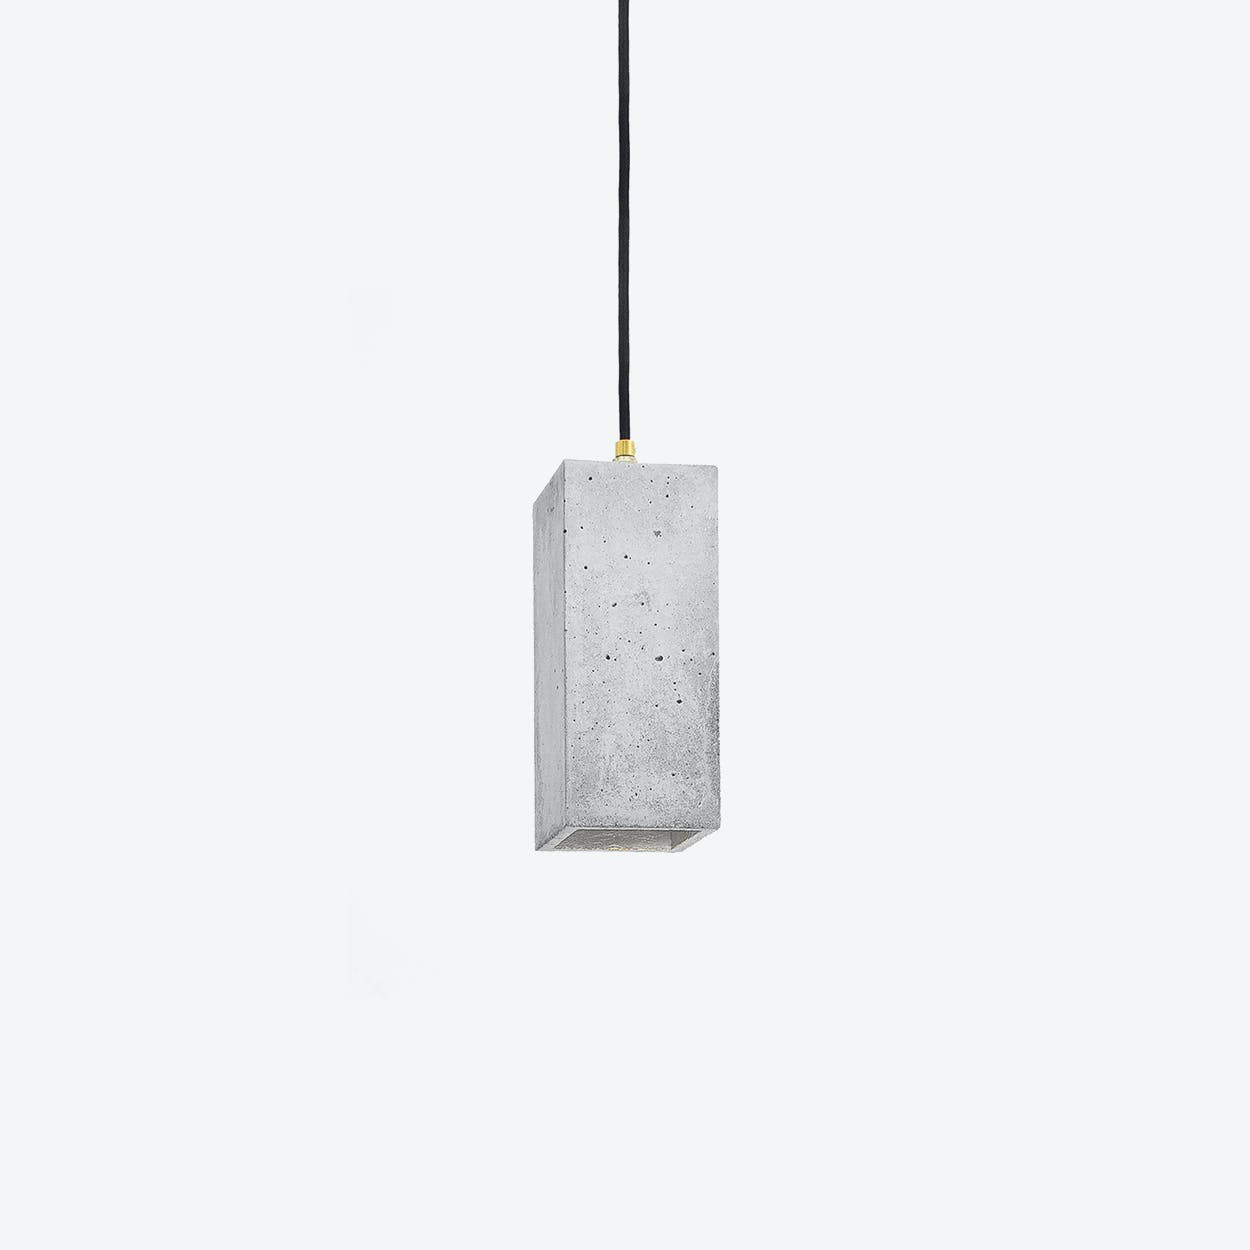 Concrete Pendant Light Retangular B2 in Light Grey and Silver